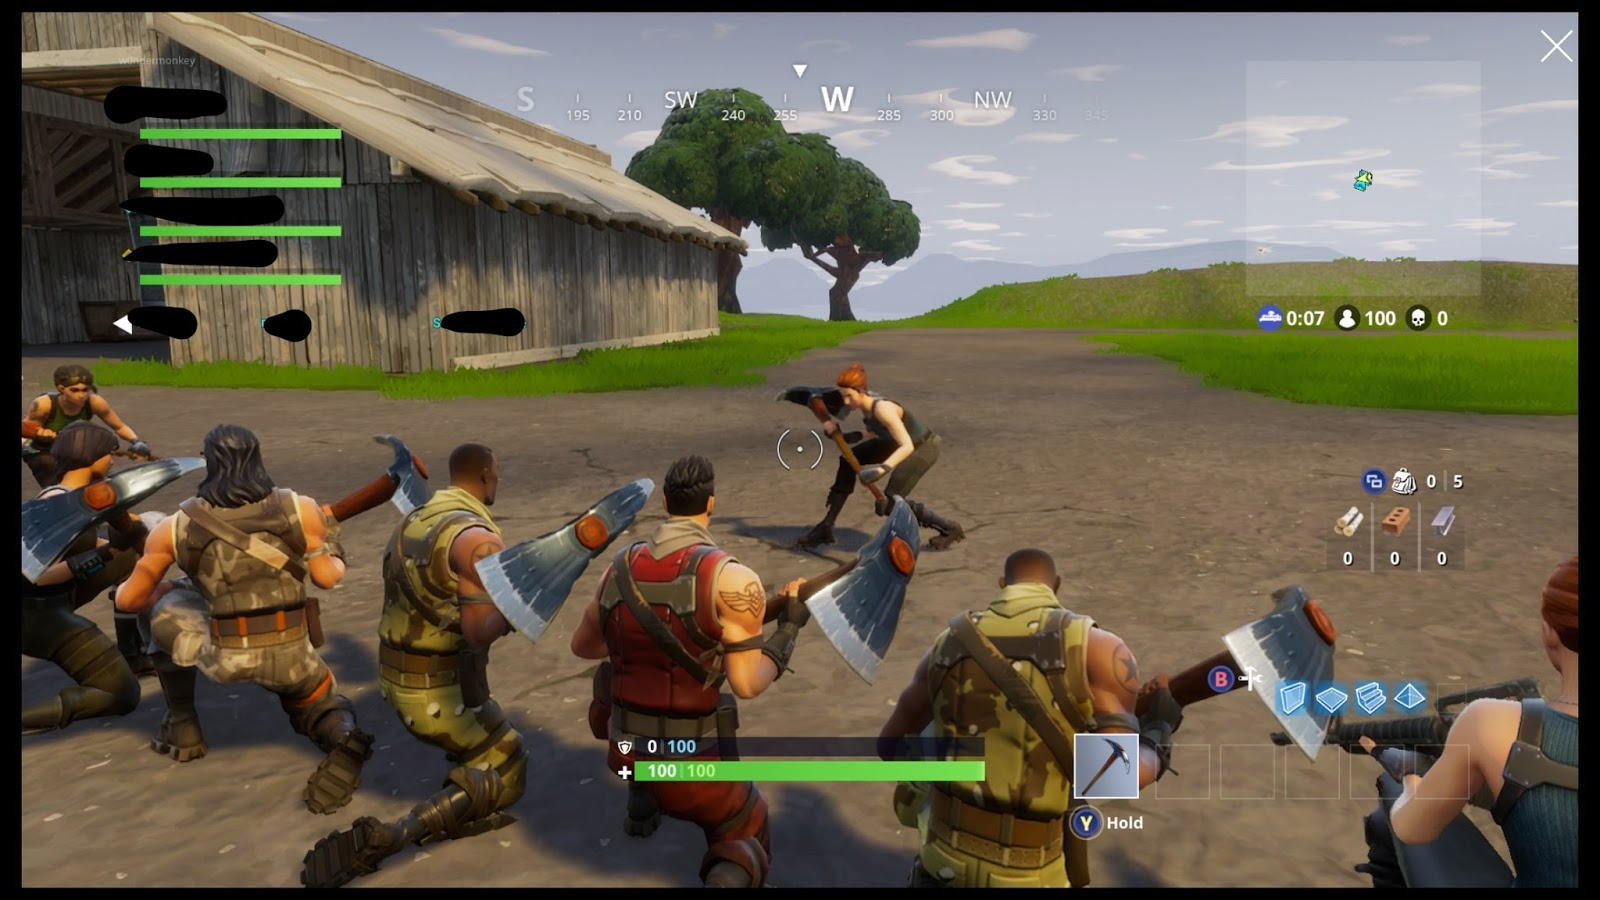 battle royale conflict The guide to fortnite: battle royale provides tips, tricks, solution, hints and weapon's description, which will allow you to understand the mechanics and rules of.